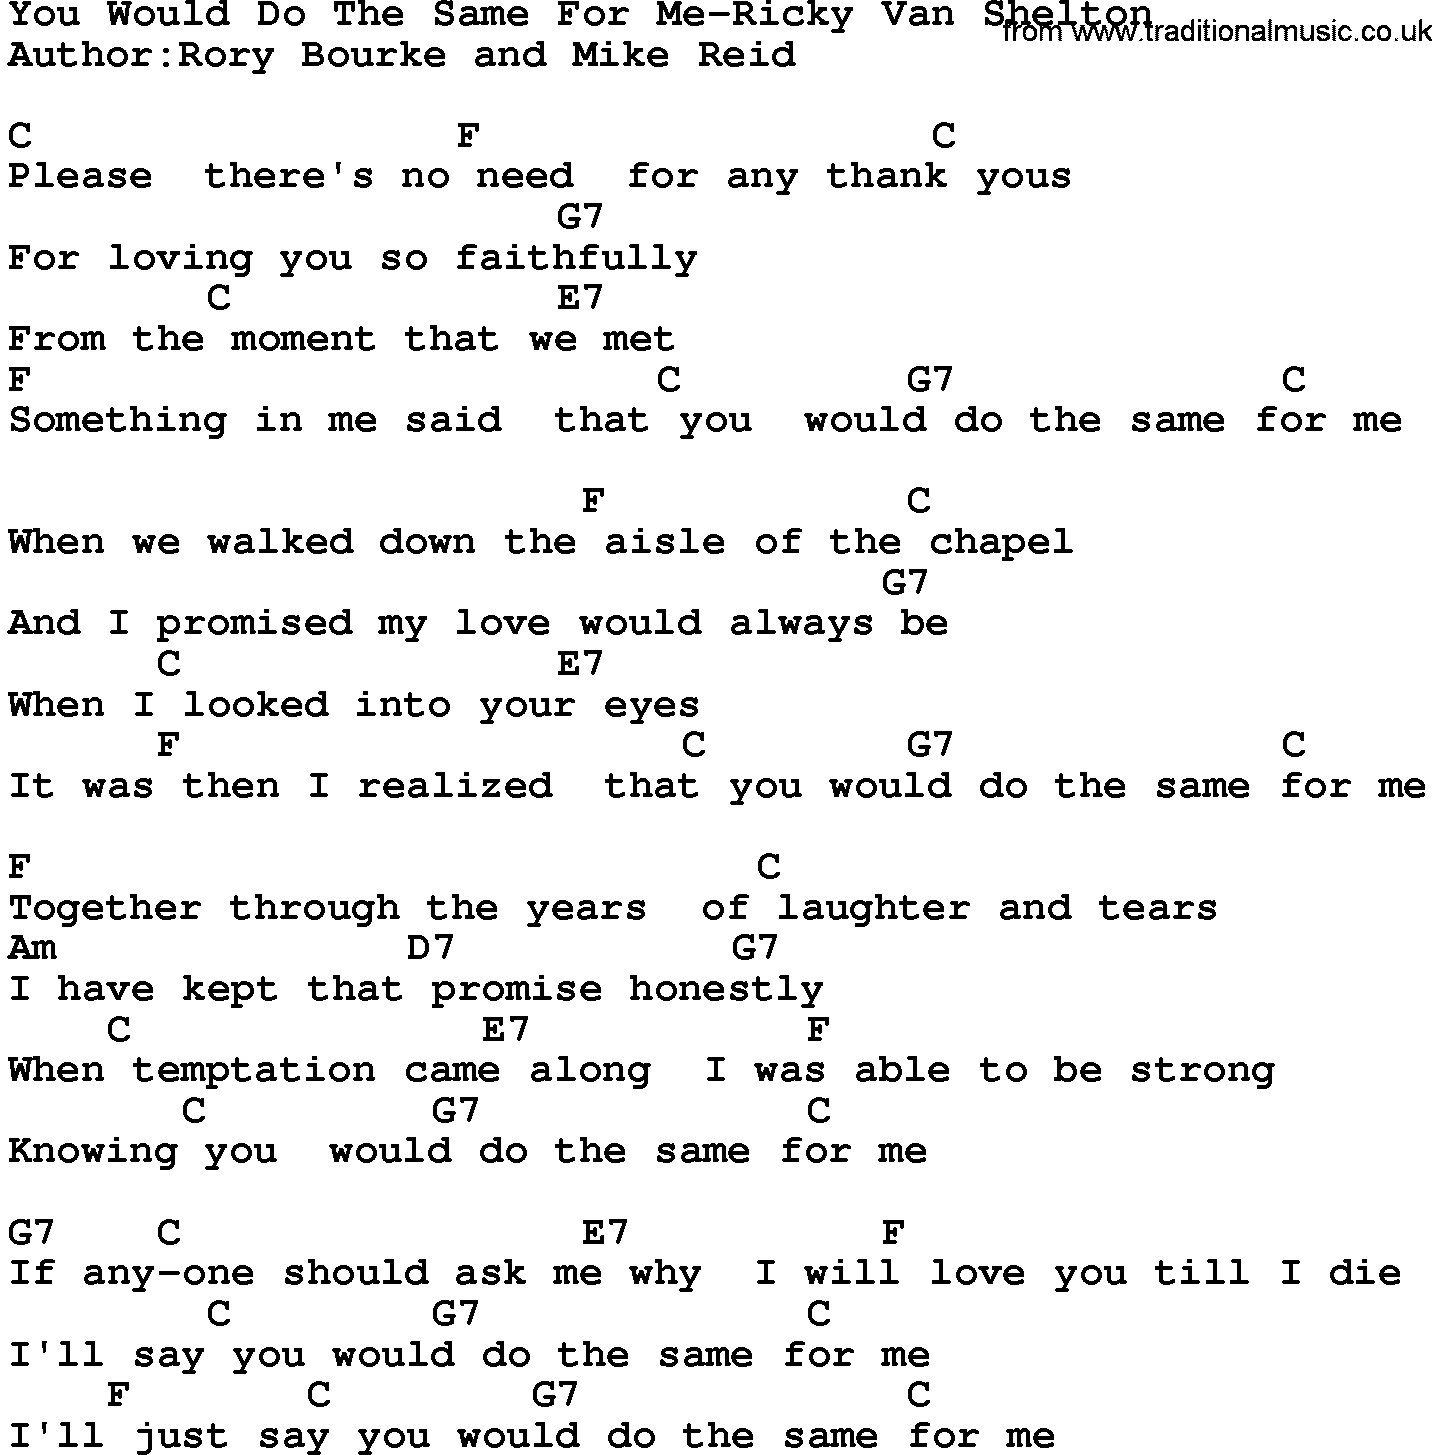 Country Musicyou Would Do The Same For Me Ricky Van Shelton Lyrics